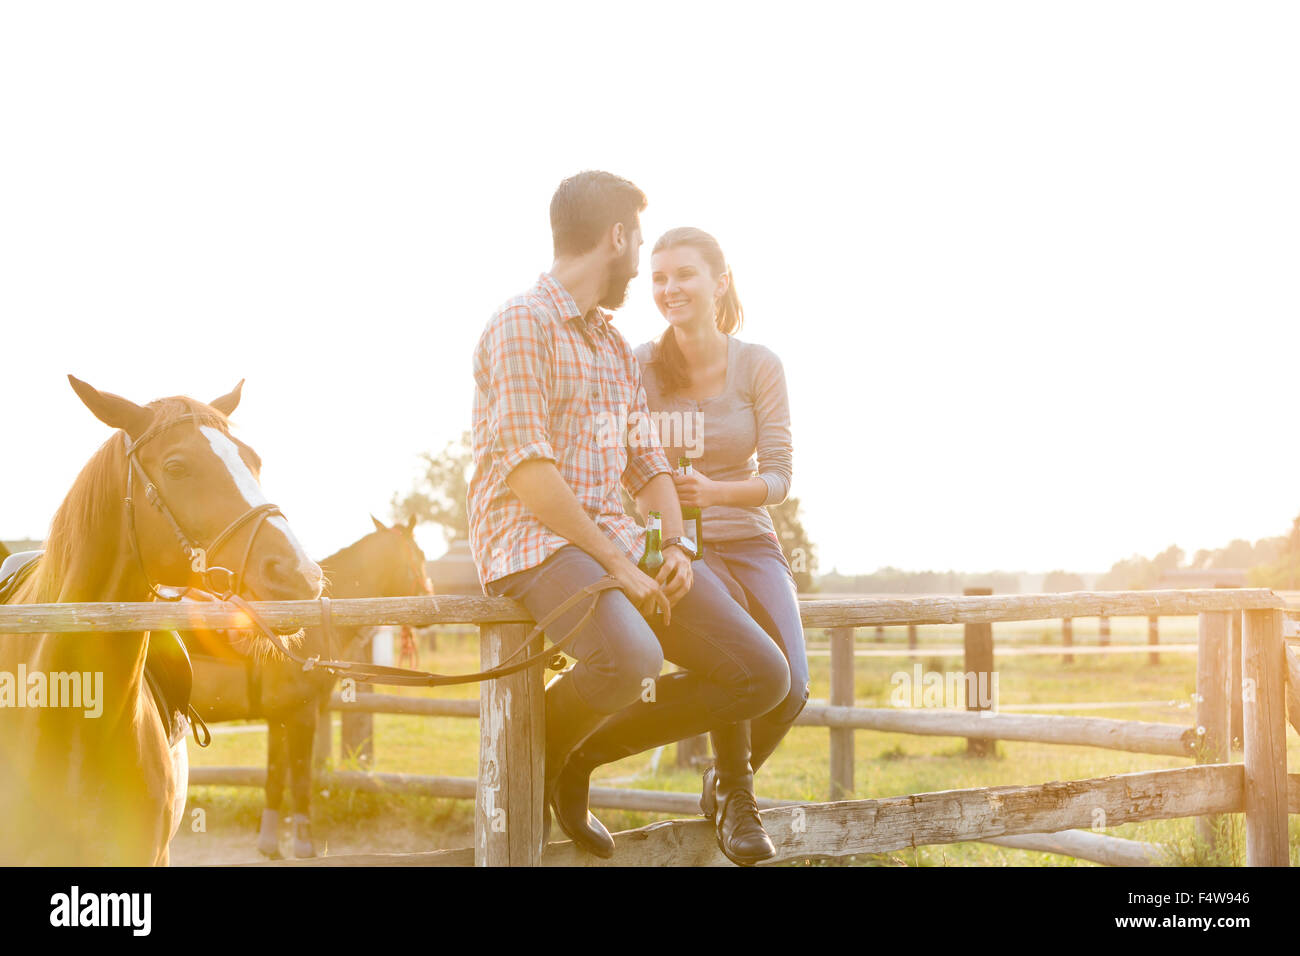 Couple with horse talking on sunny rural pasture fence Stock Photo